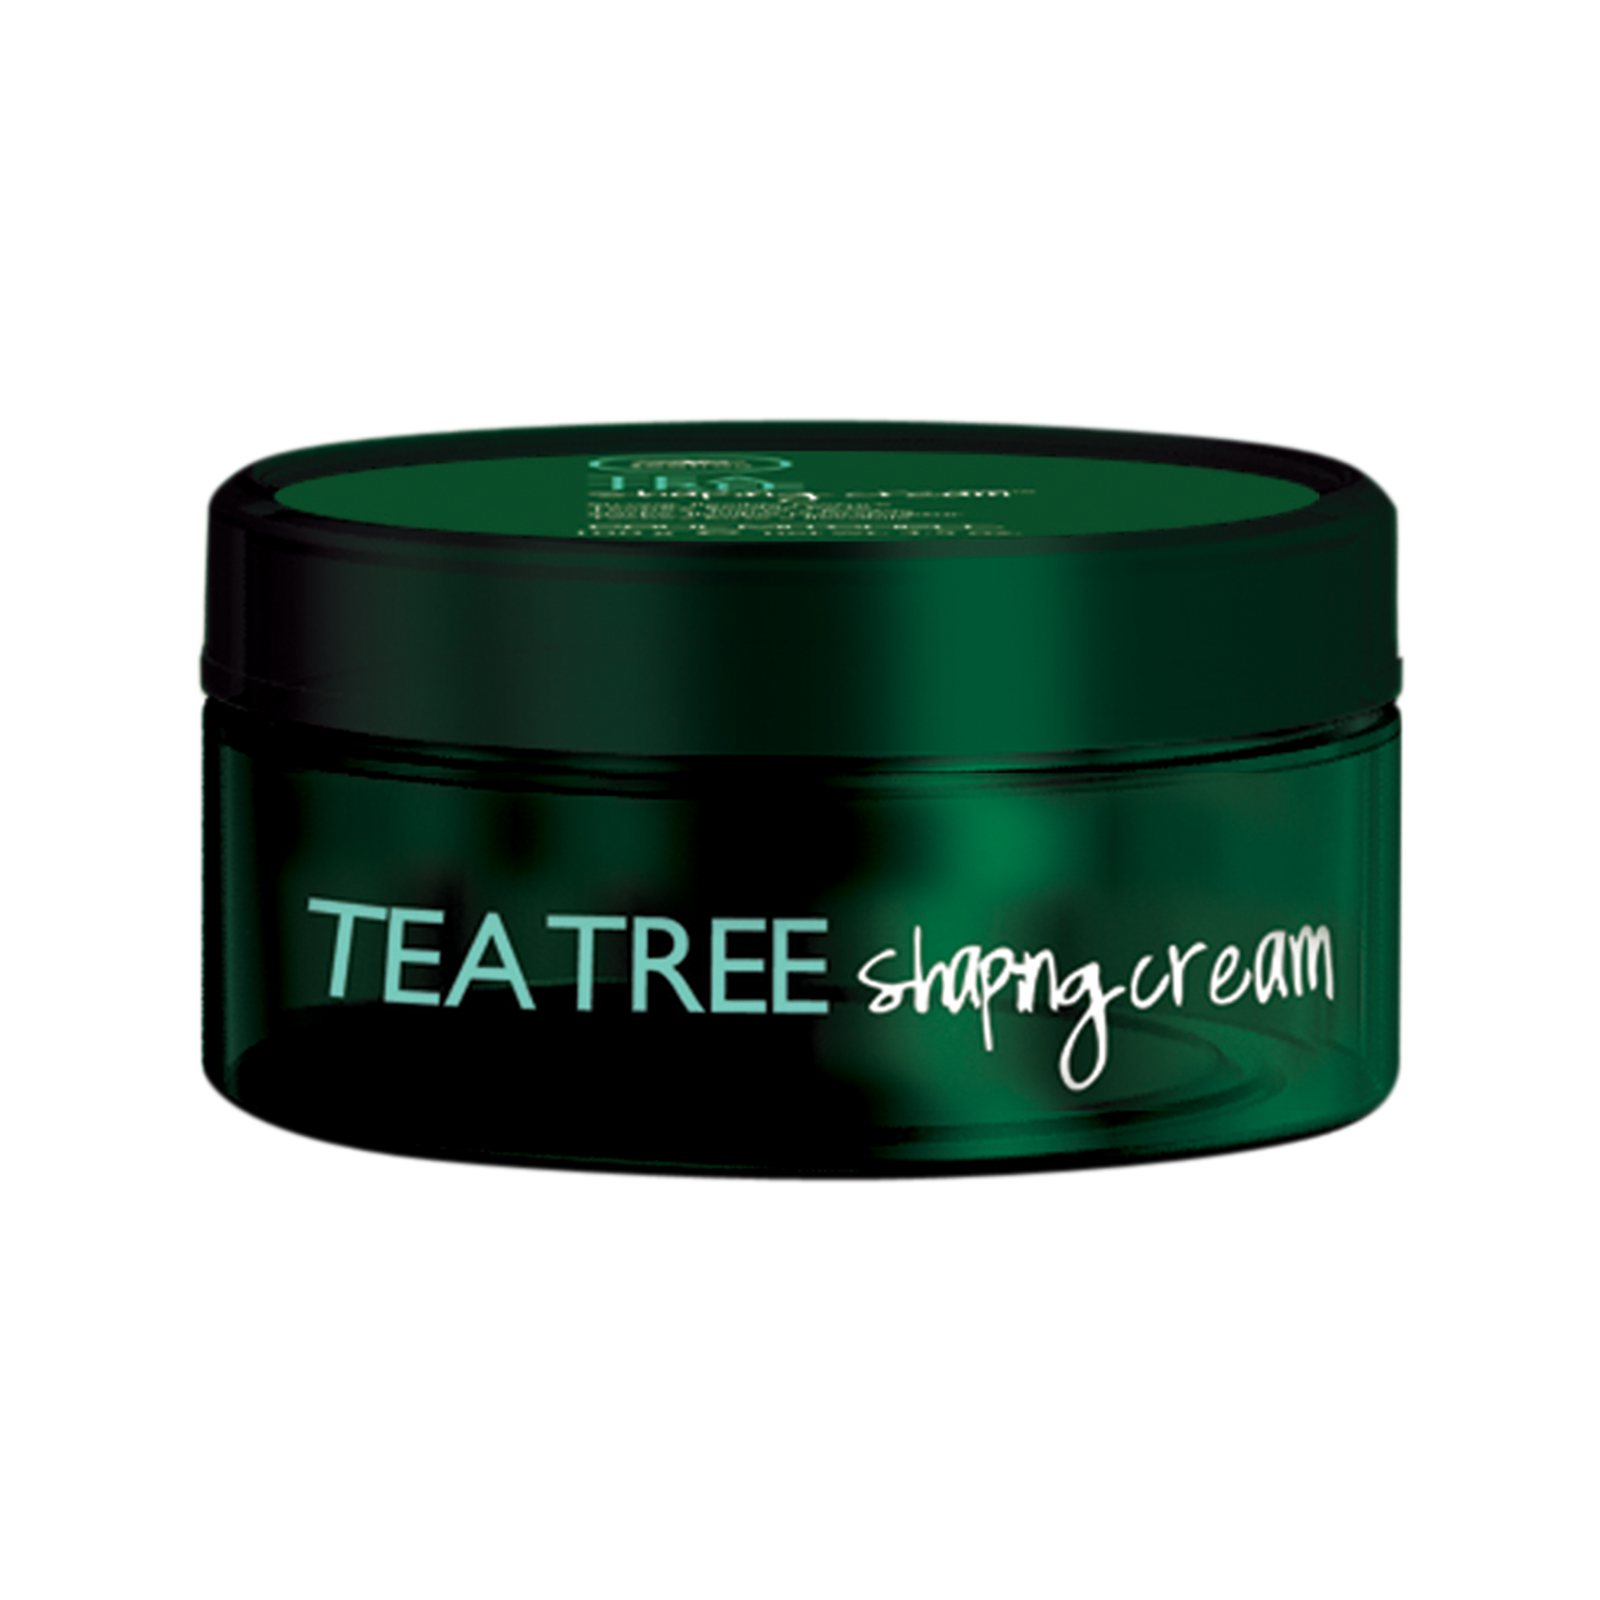 Tea Tree - Shaping Cream